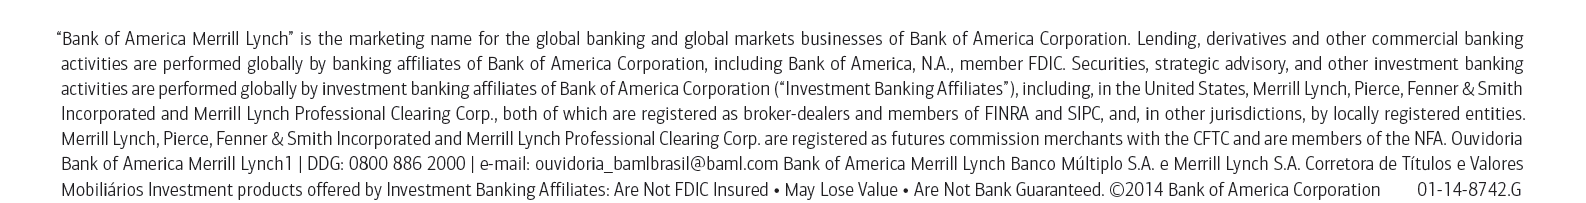 bank of america merrill lynch ad disclaimer